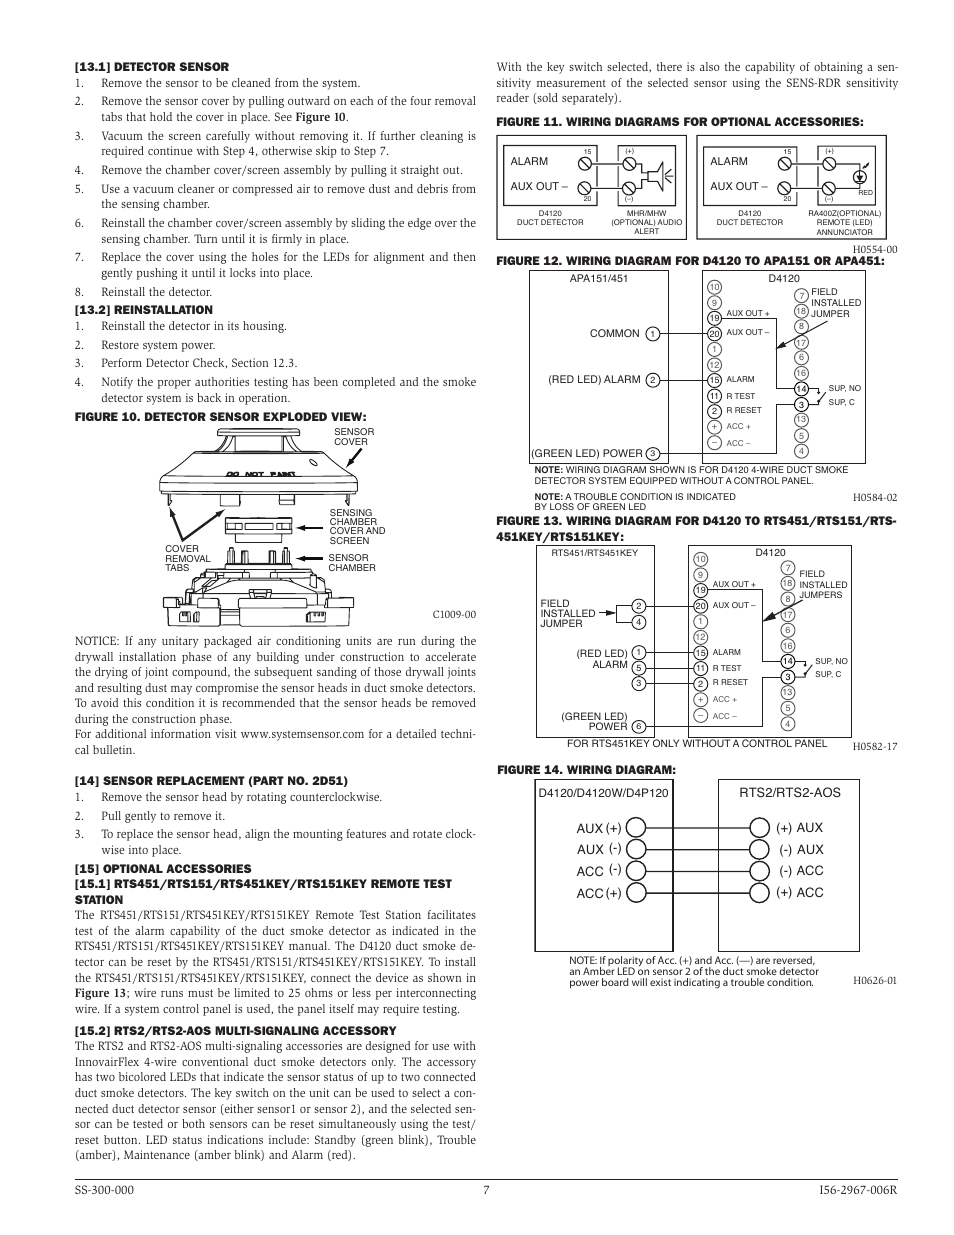 system sensor d4120 d4p120 and d4s page7 system sensor d4120, d4p120, and d4s user manual page 7 8 rts451 wiring diagram at webbmarketing.co